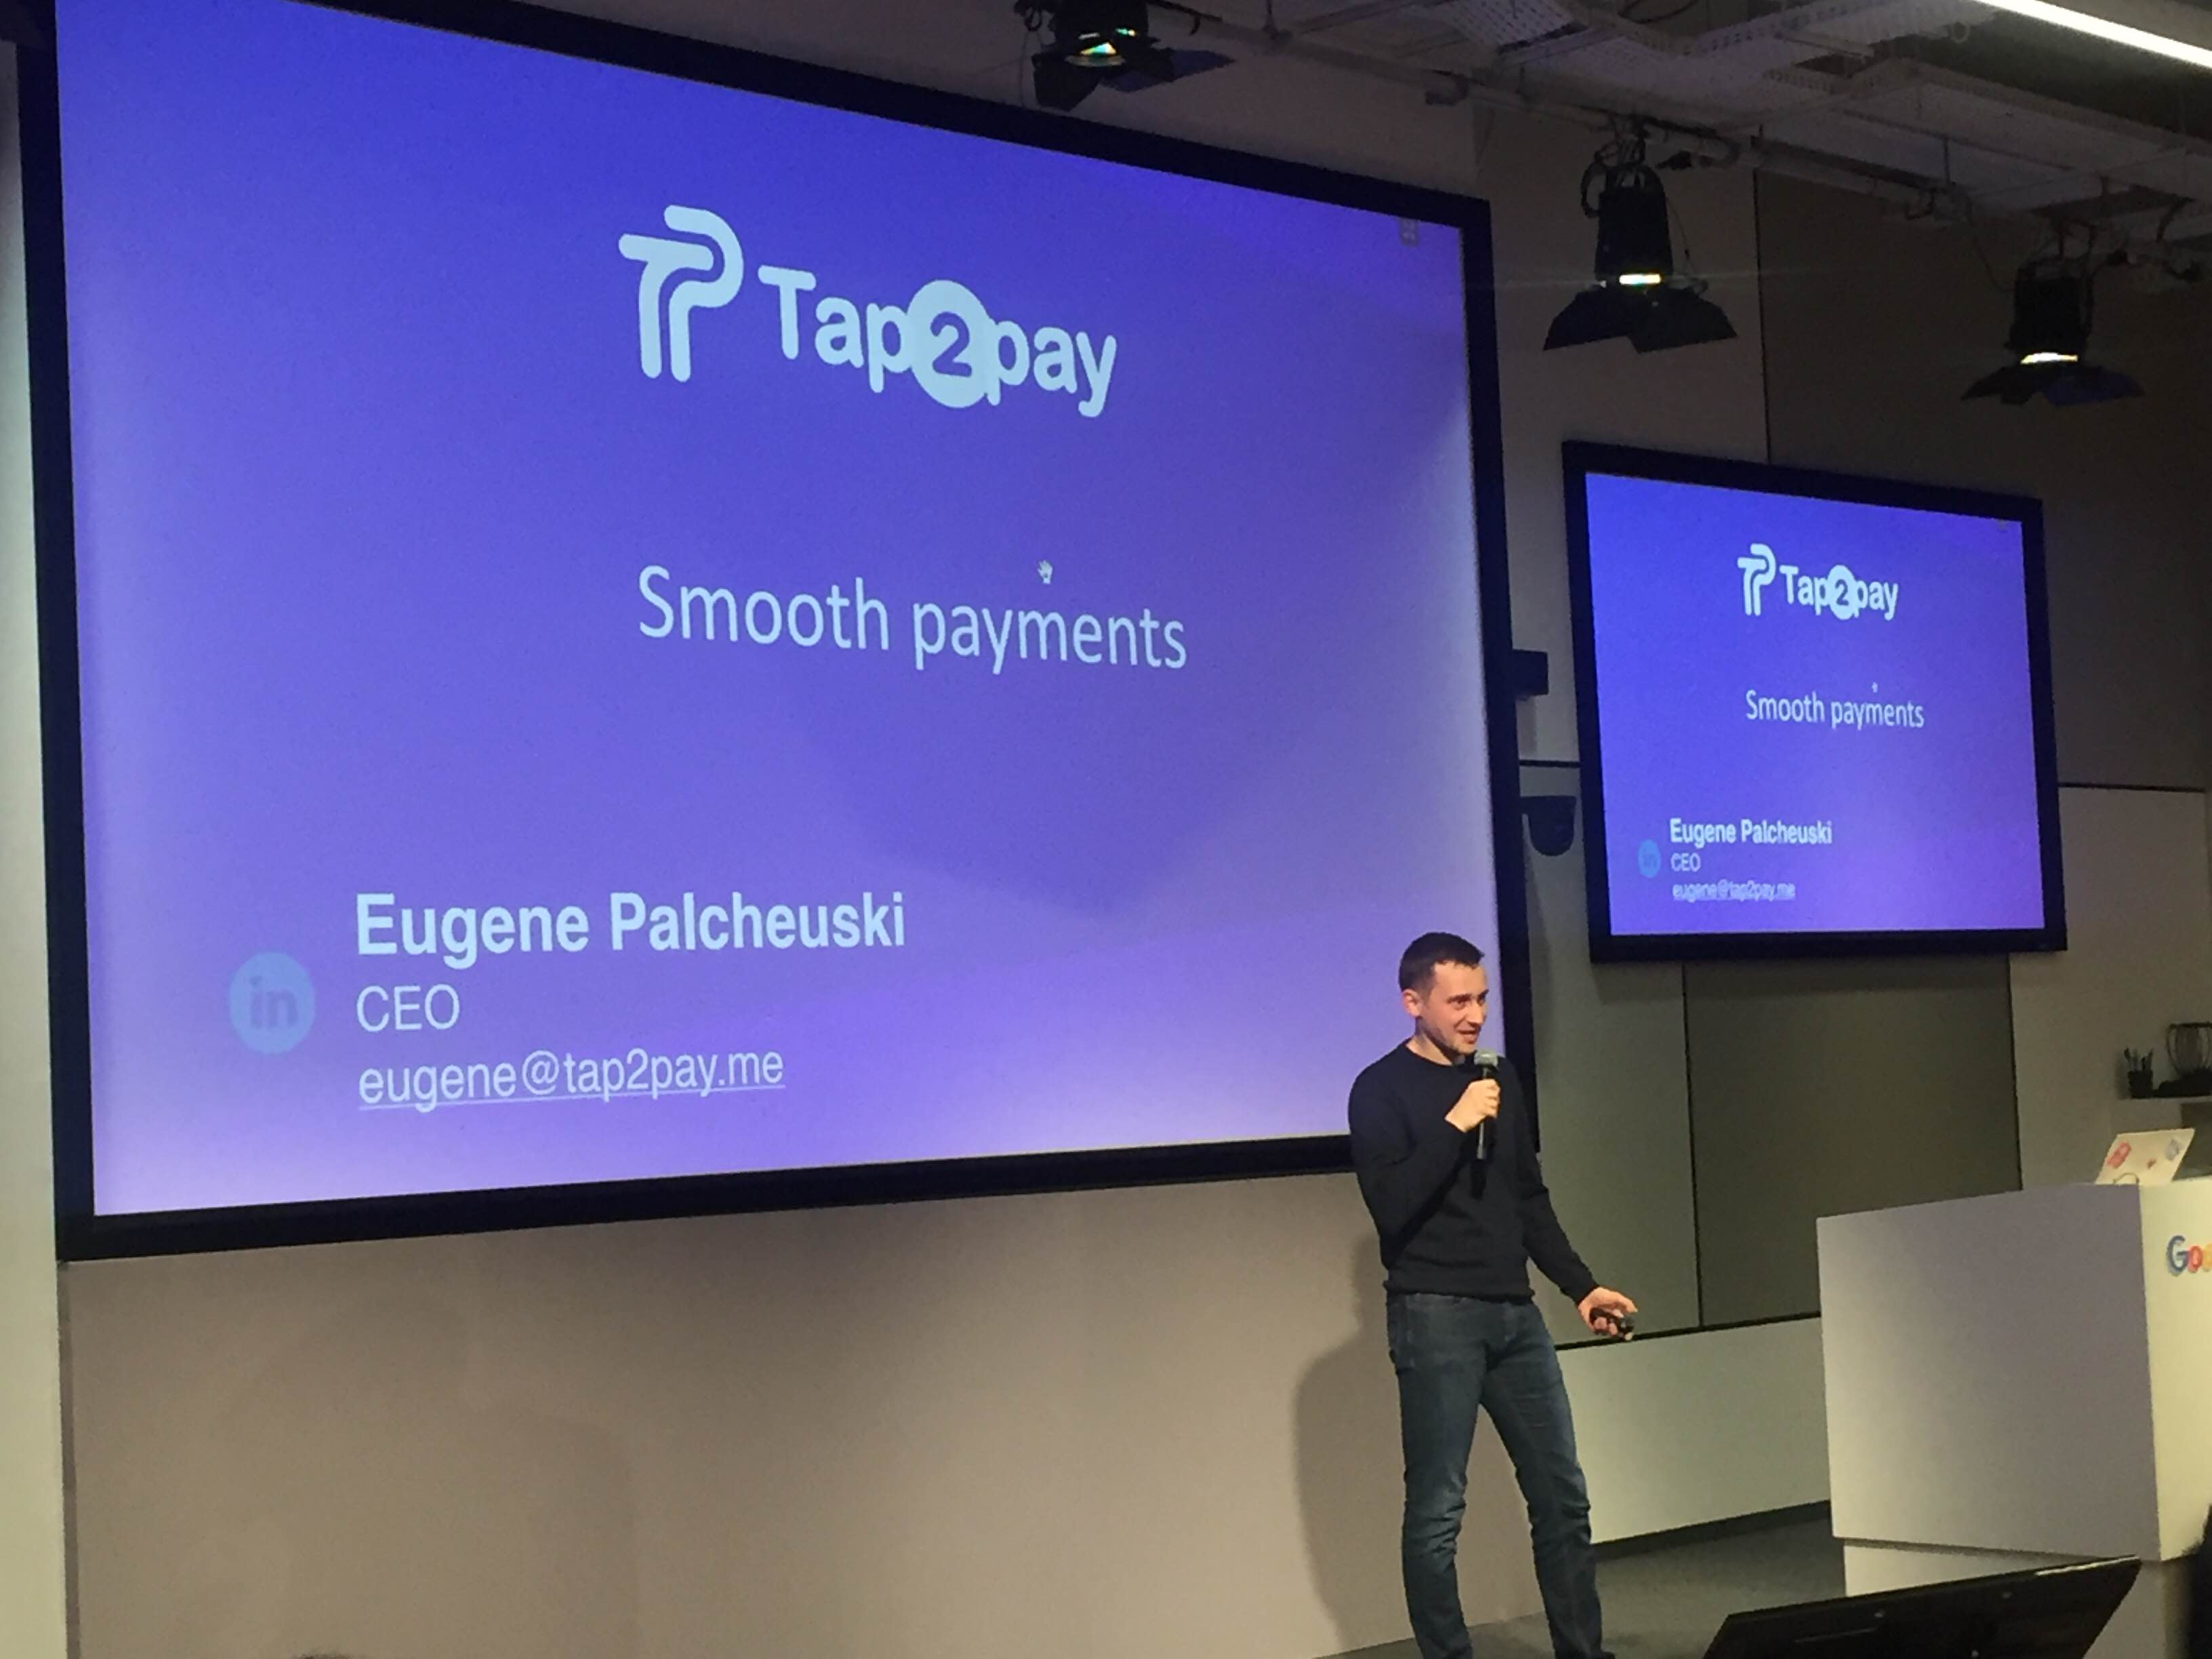 Payment Gateway Provider In Poland